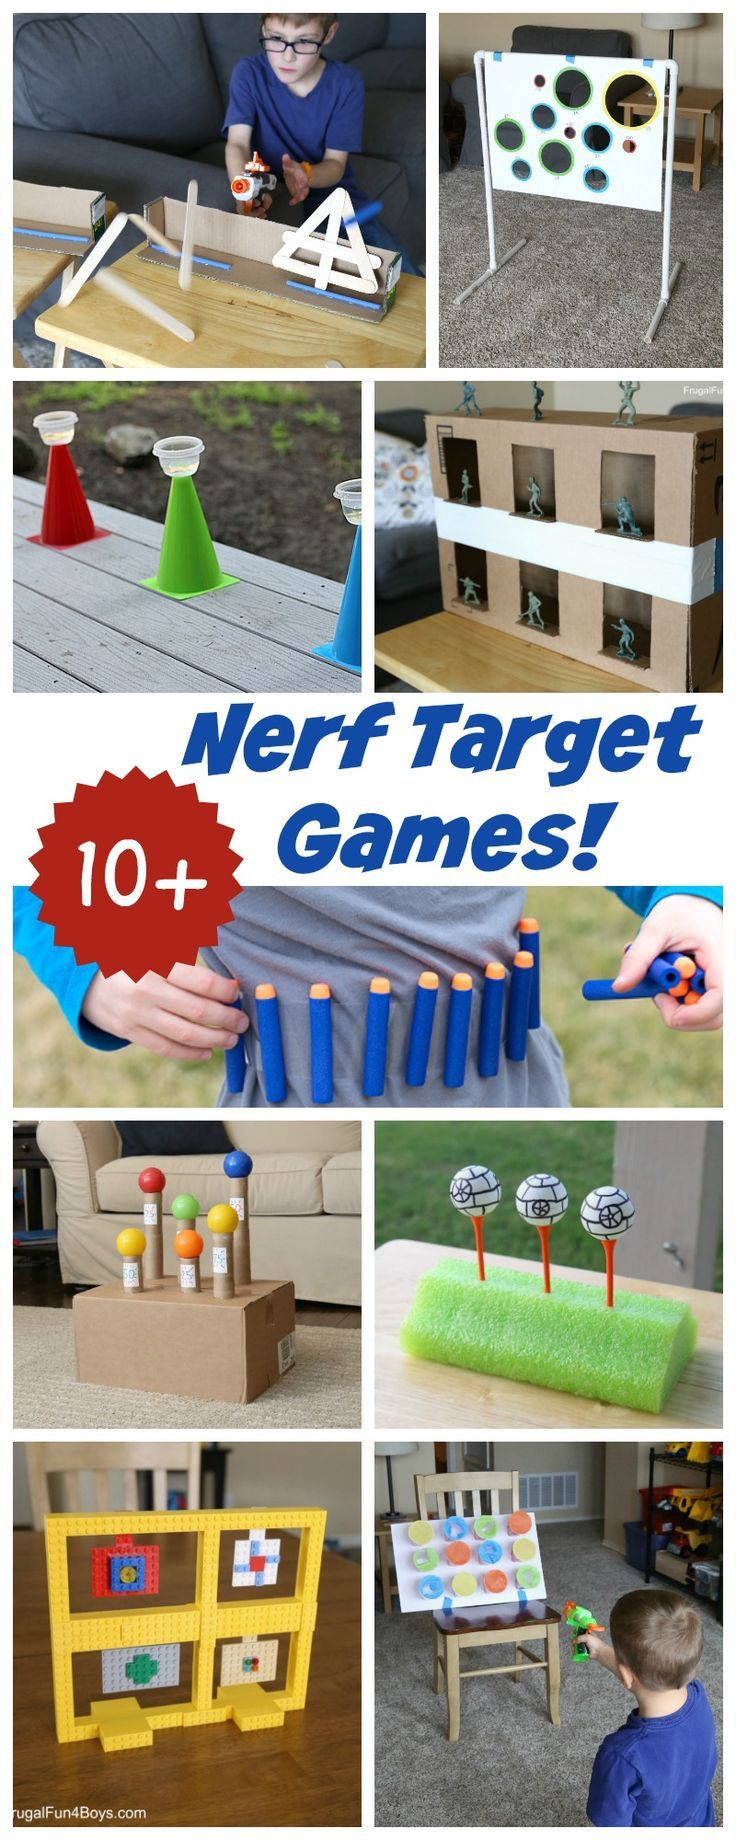 10+ of the BEST Nerf Target Games - Exploding stick targets, army guy  shooting